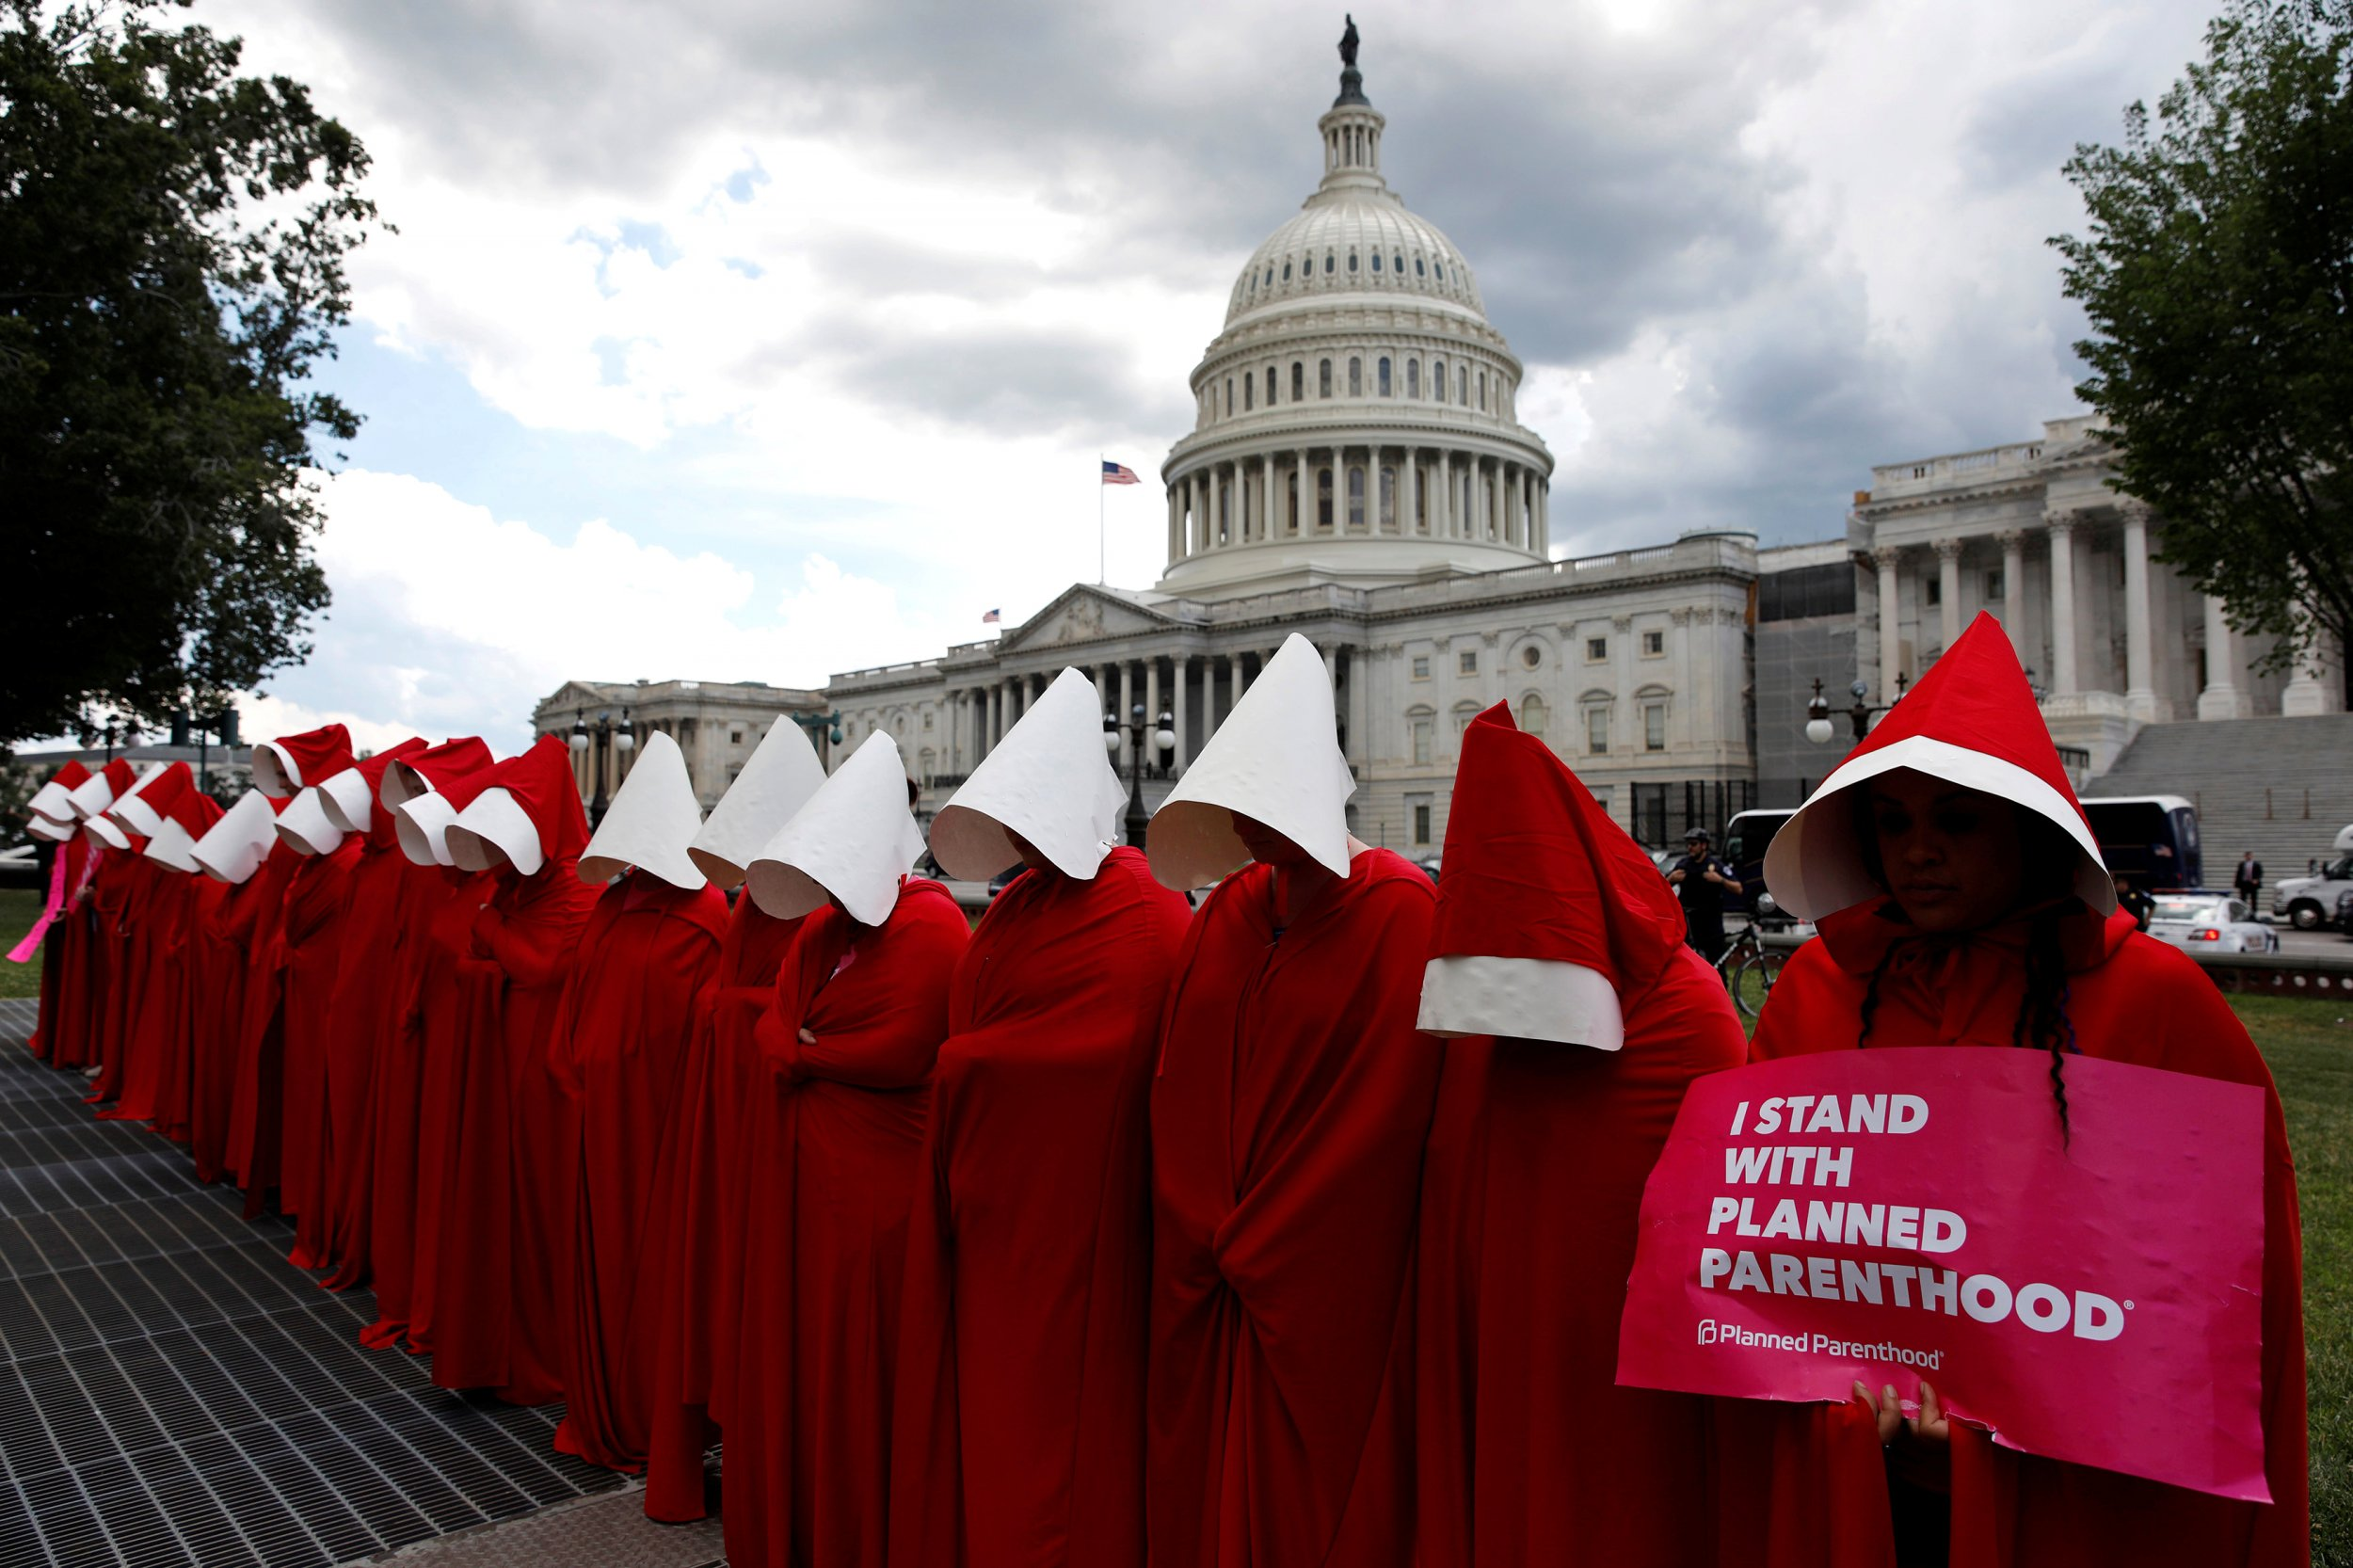 Handmaid's Tale protests